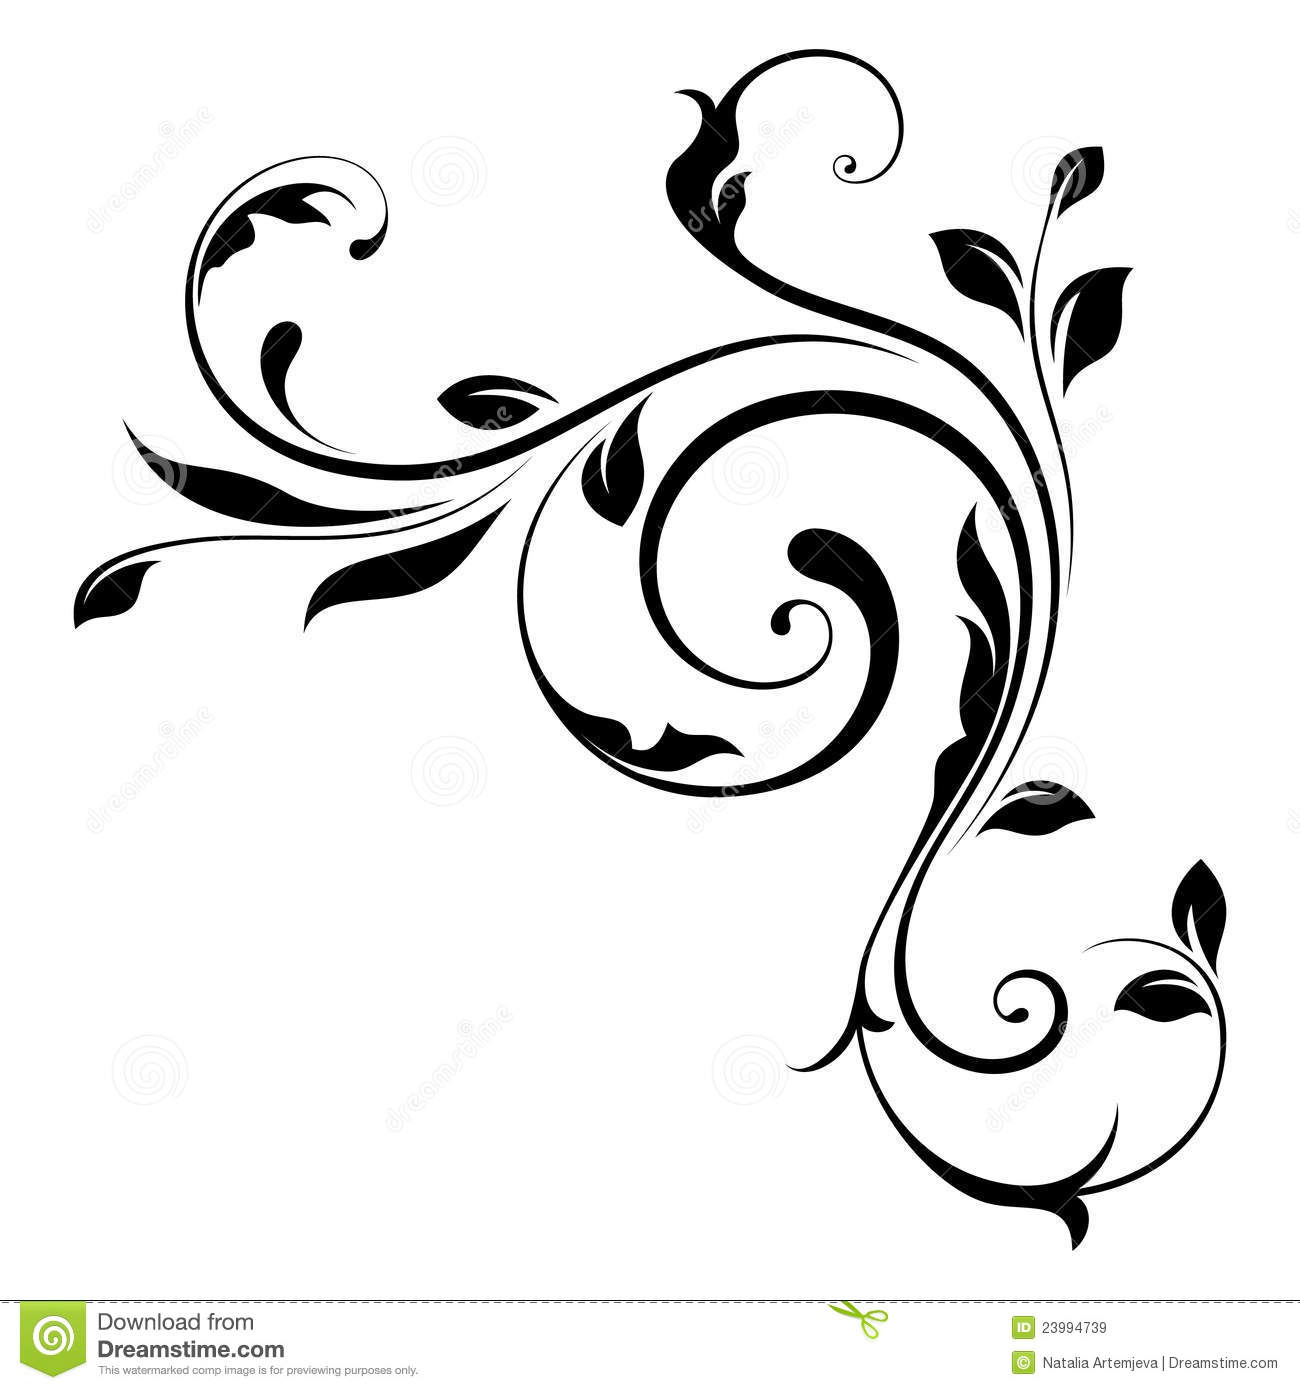 Black Swirls Designs Underfontanacountryinncom